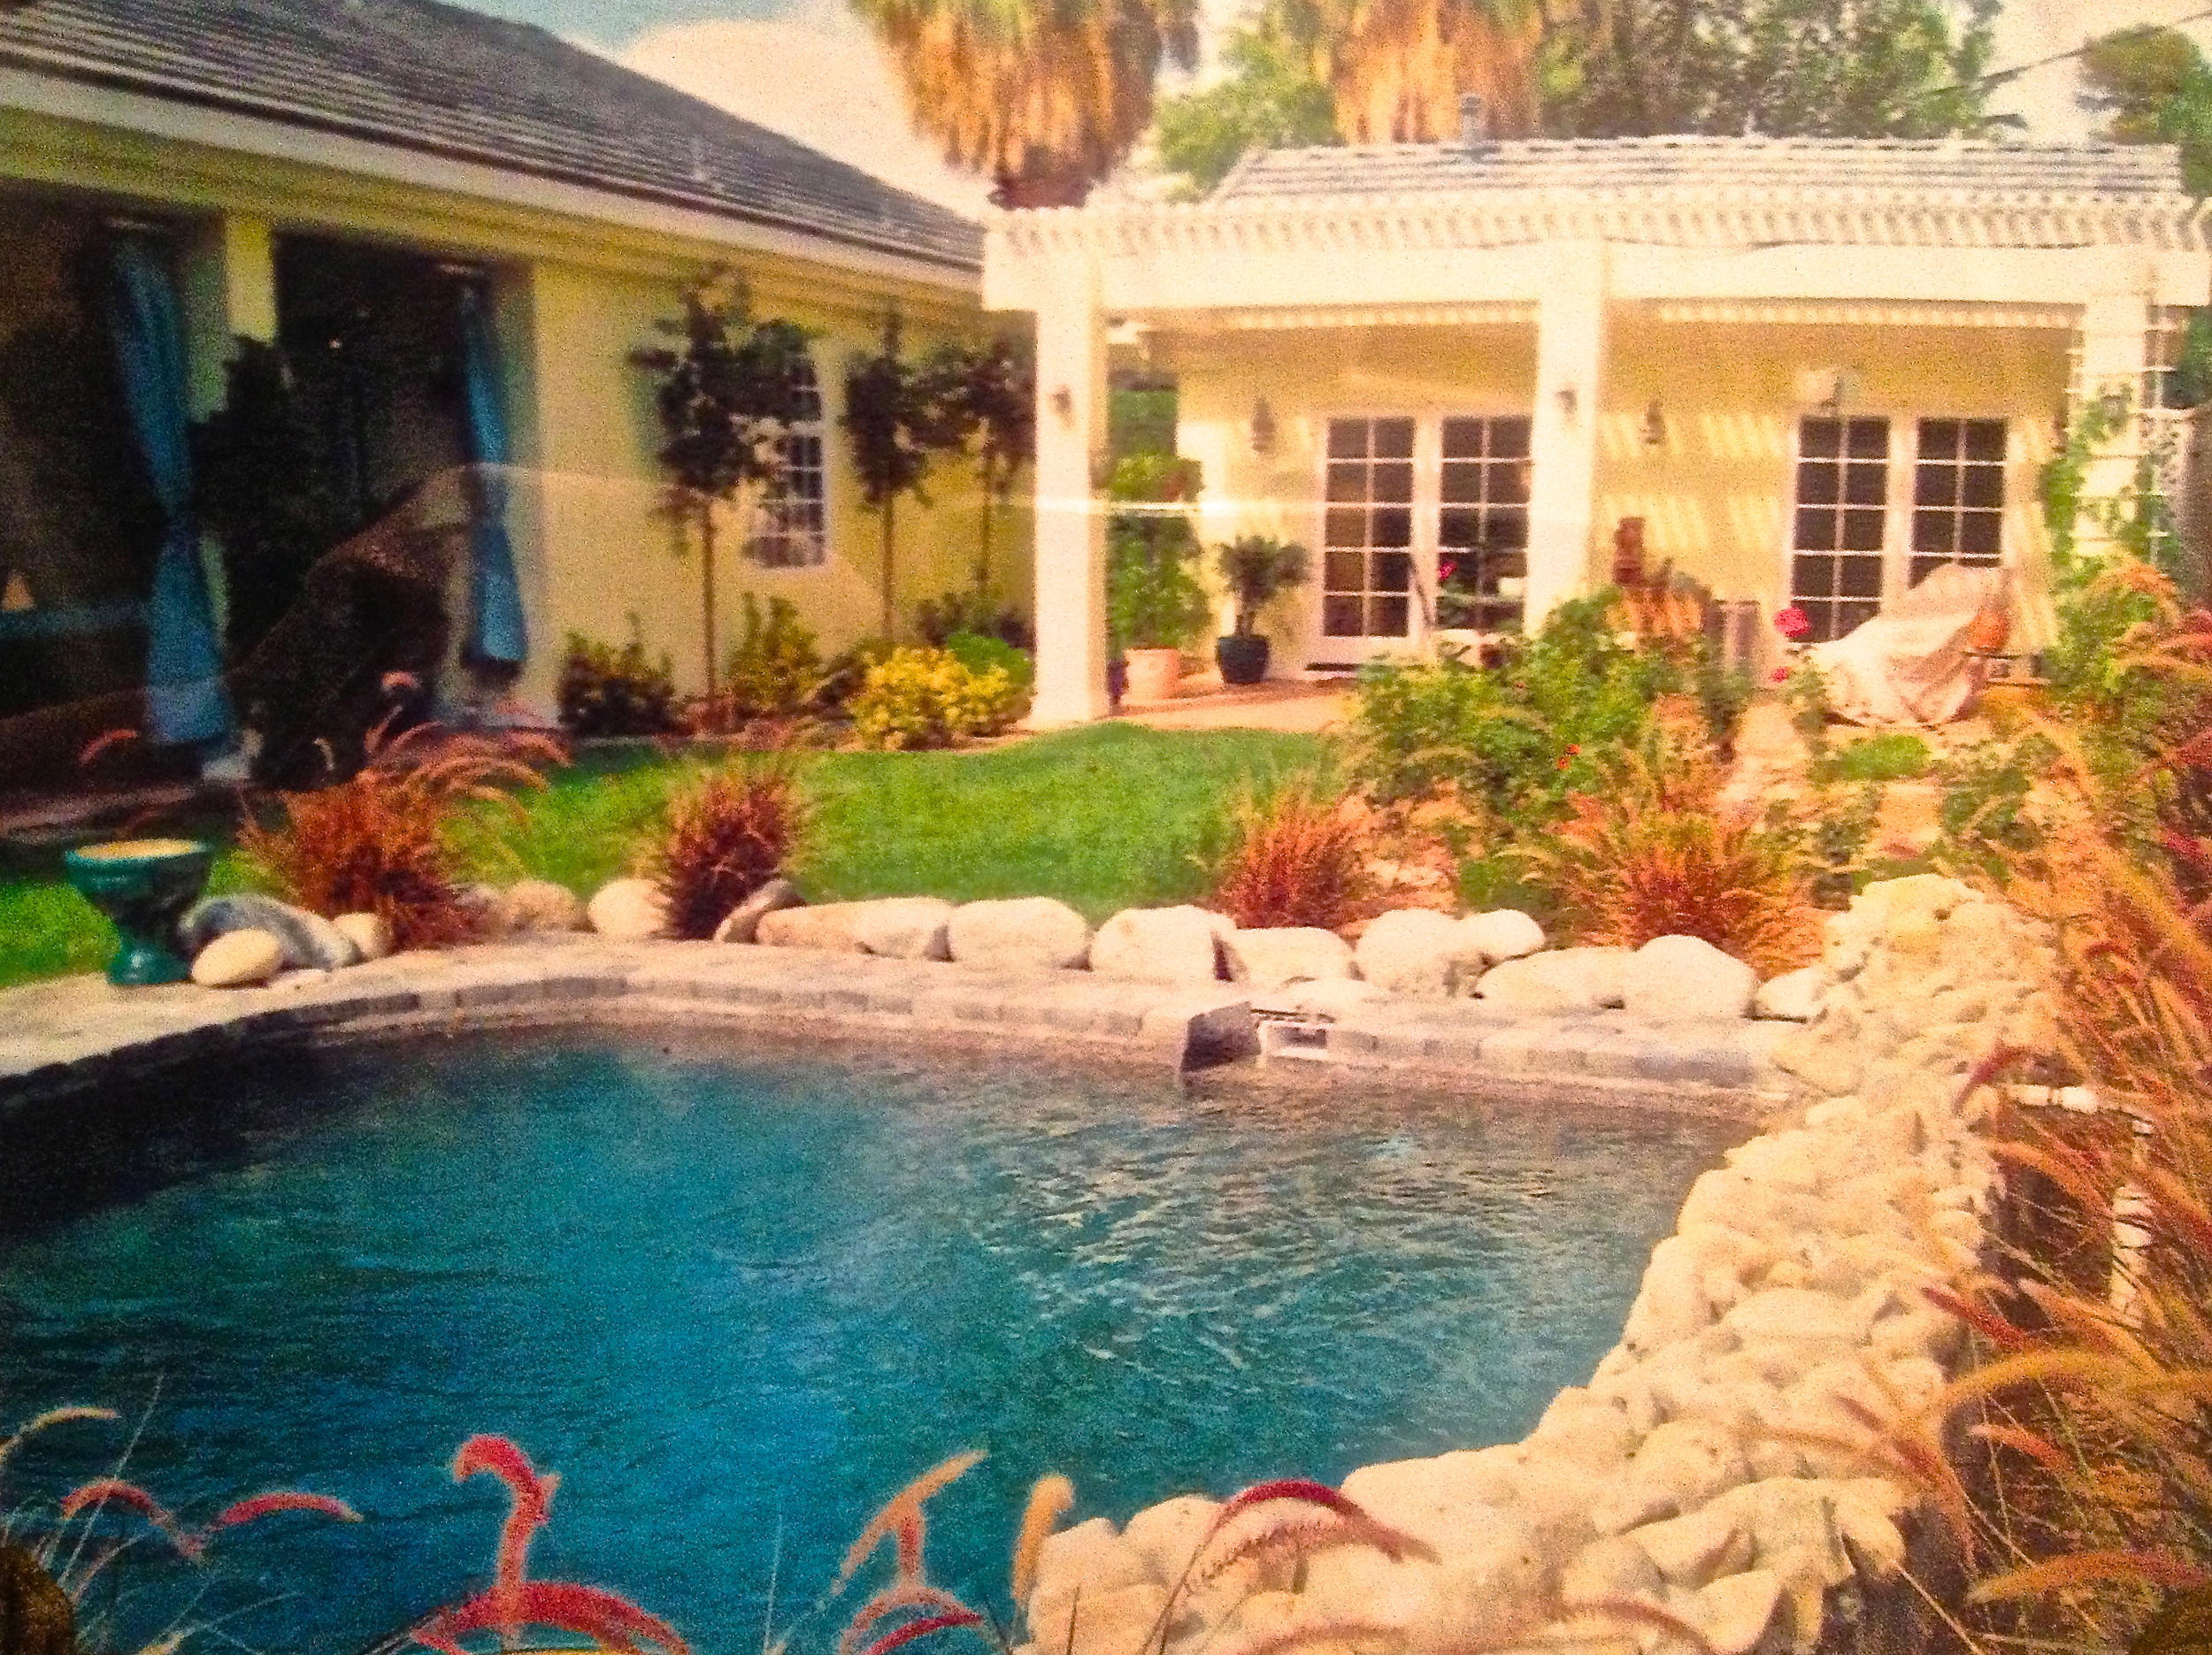 Inviting dipping pool and tropical plants